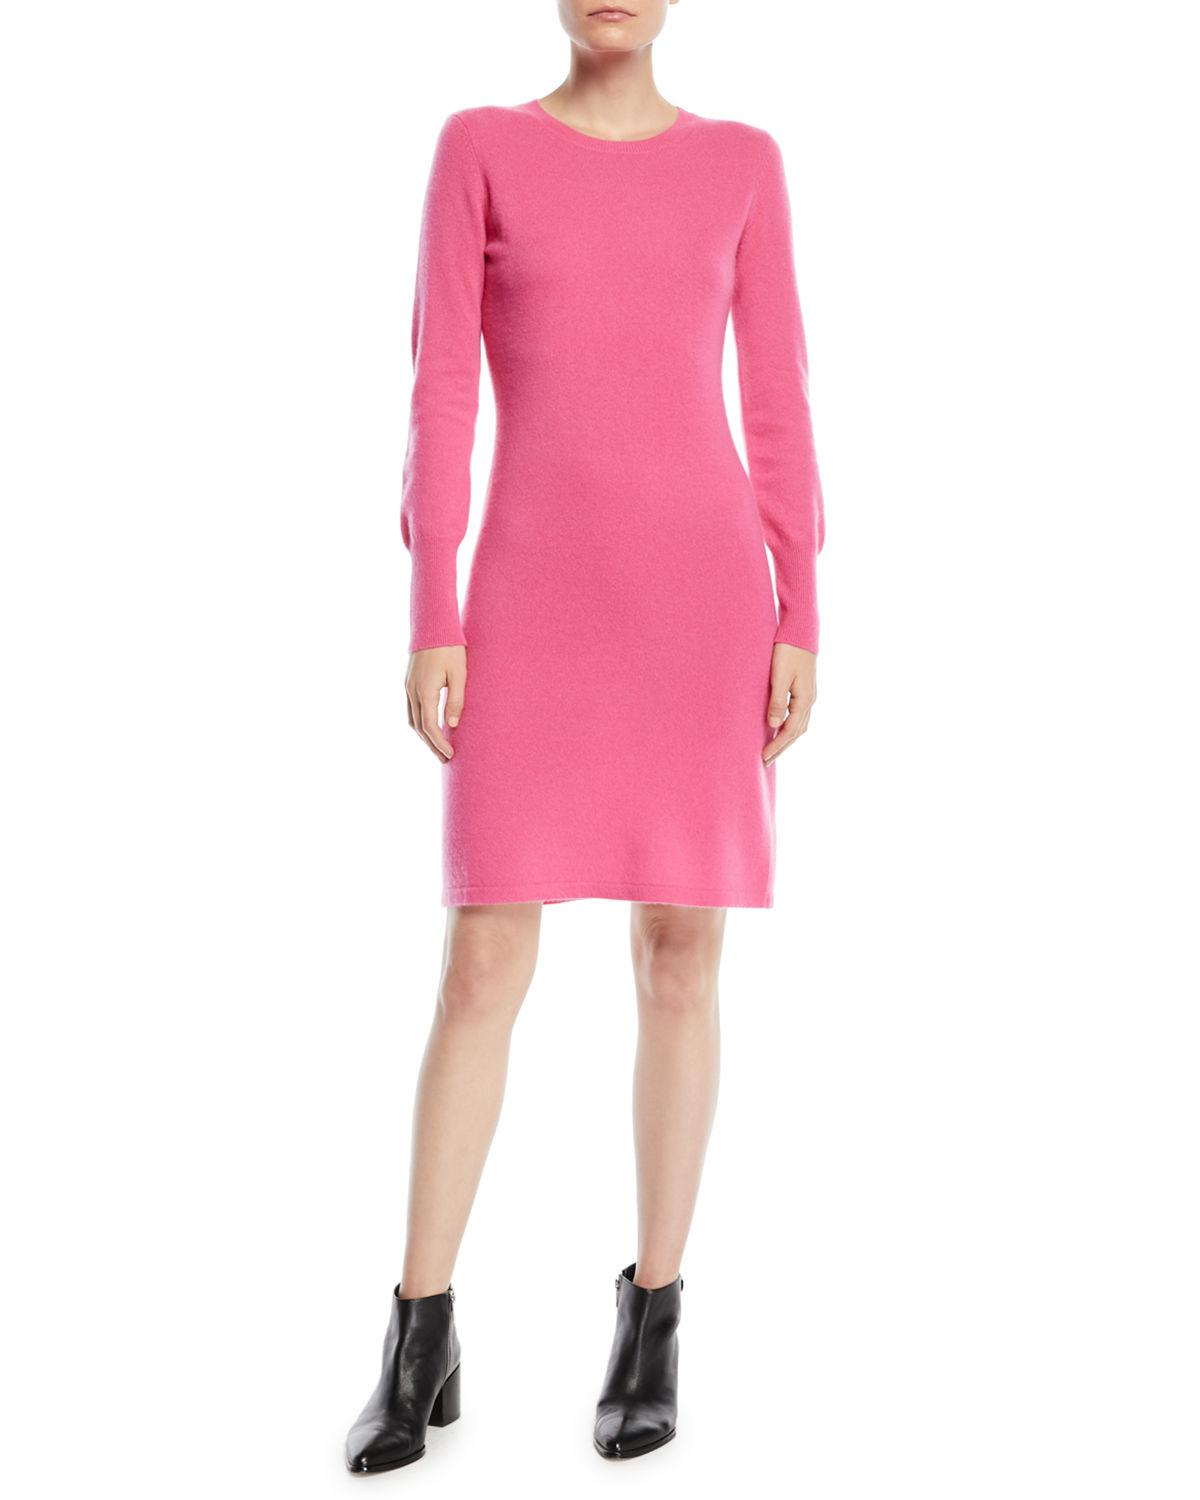 e07bb8621260 Lyst - Neiman Marcus Cashmere Long-sleeve Sweater Dress in Pink